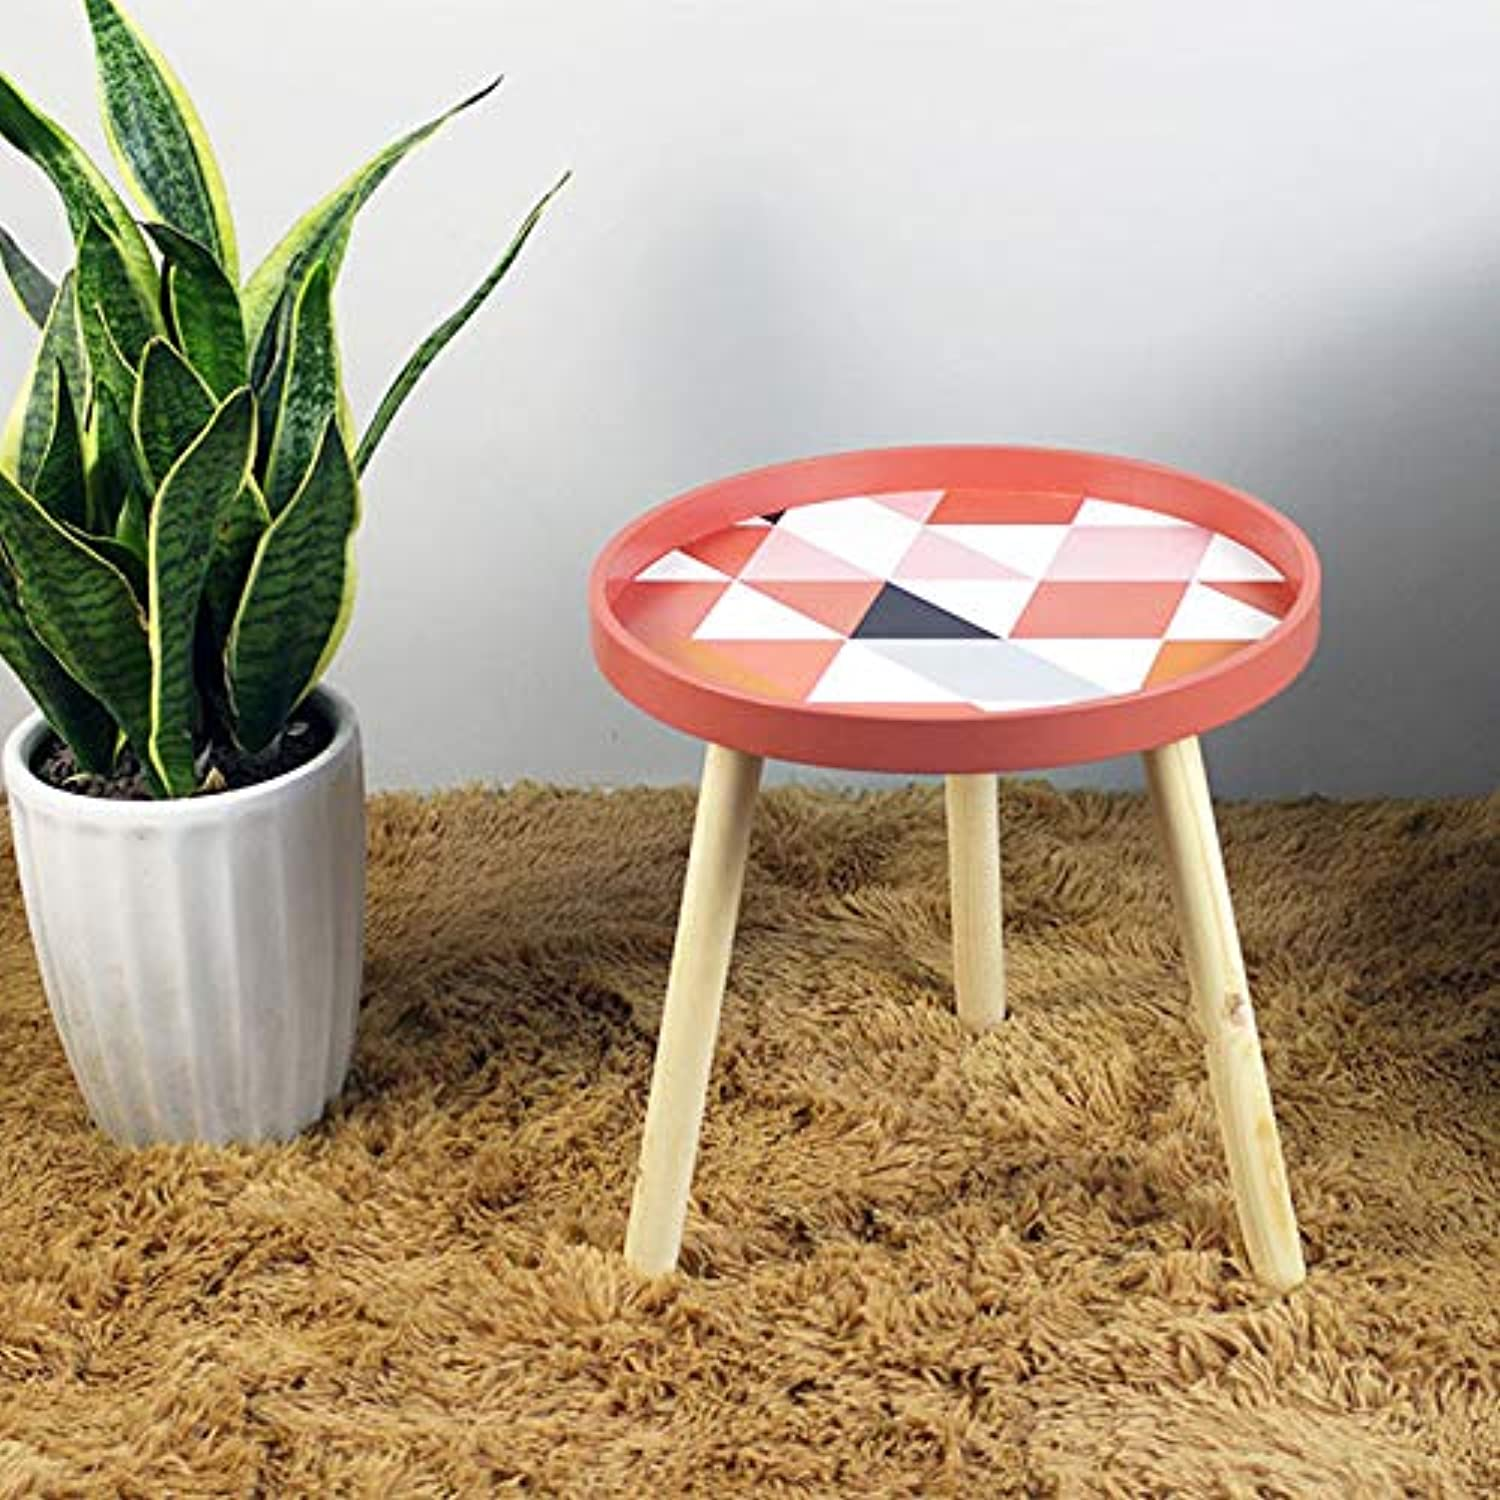 Nordic Small Fresh Mini Coffee Tables Creative Wood Low Table Round Tables Living Room Furniture Home Furniture Home Decorations,B